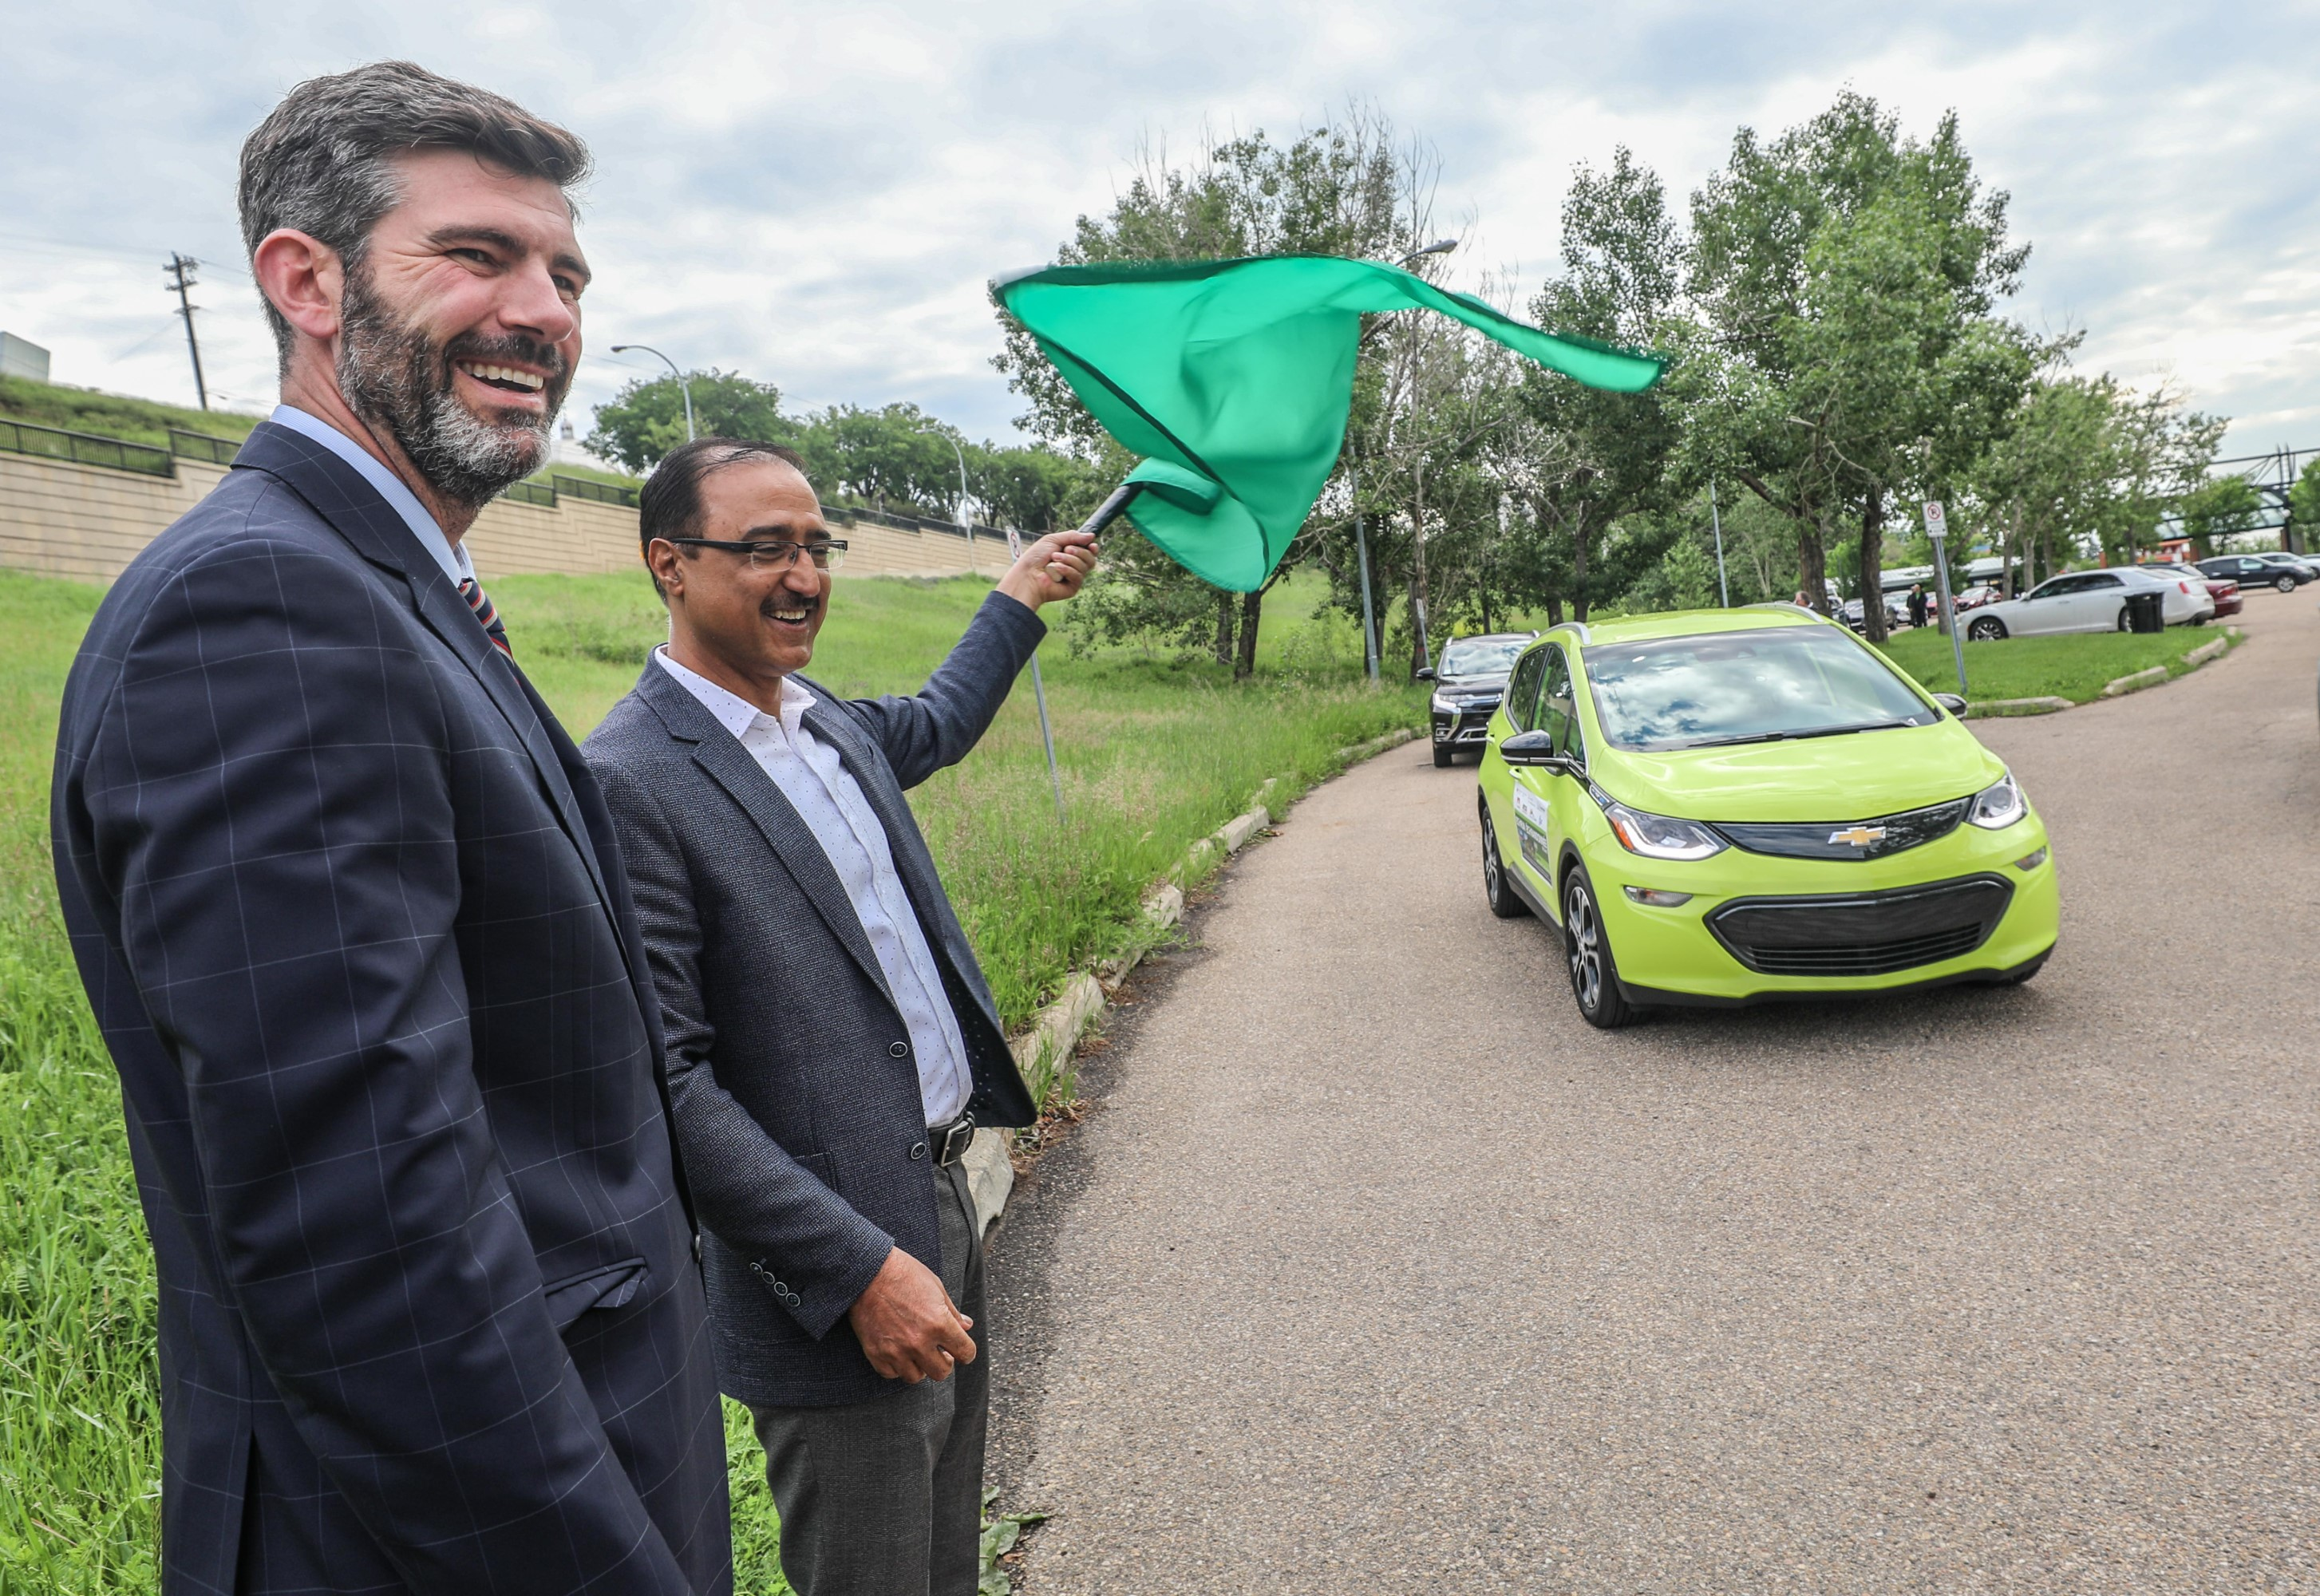 Minister Sohi and Mayor Iveson waving the green flag